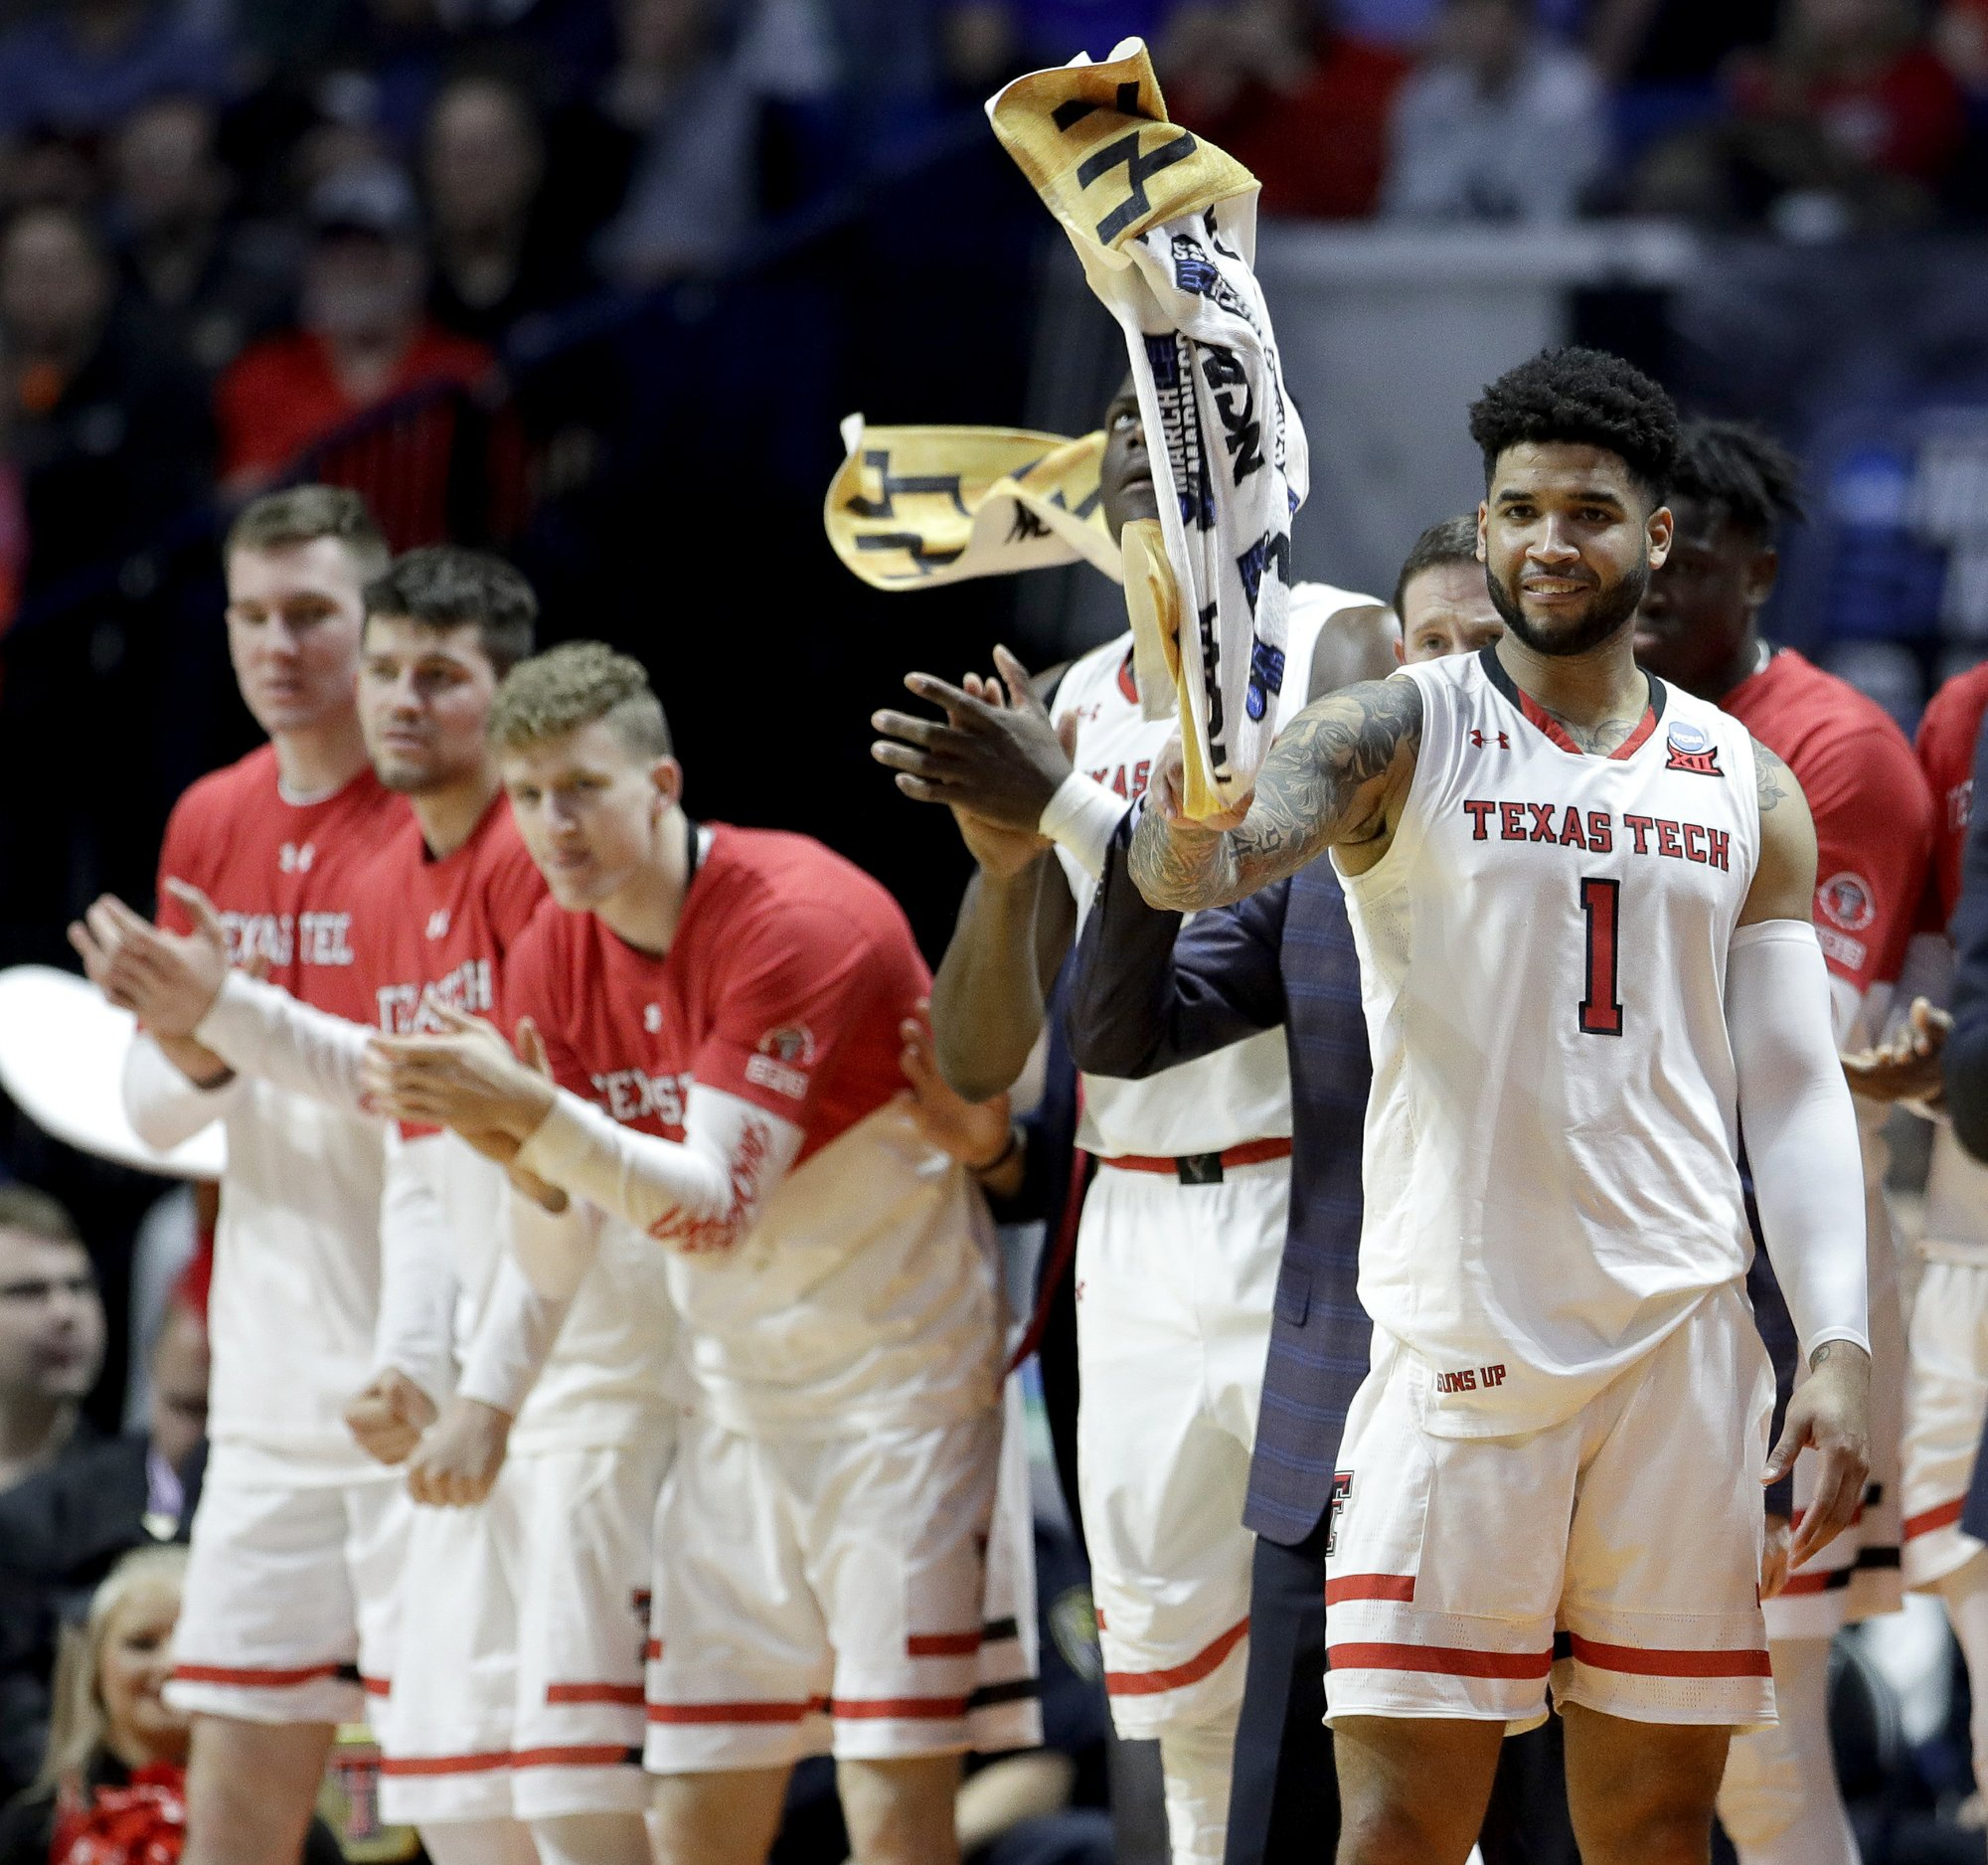 The Texas Tech bench celebrate after a basket during the second half of a first-round men's college basketball game against Northern Kentucky in the NCAA Tournament Friday, March 22, 2019, in Tulsa, Okla. Texas Tech won 72-57. (AP Photo/Charlie Riedel)